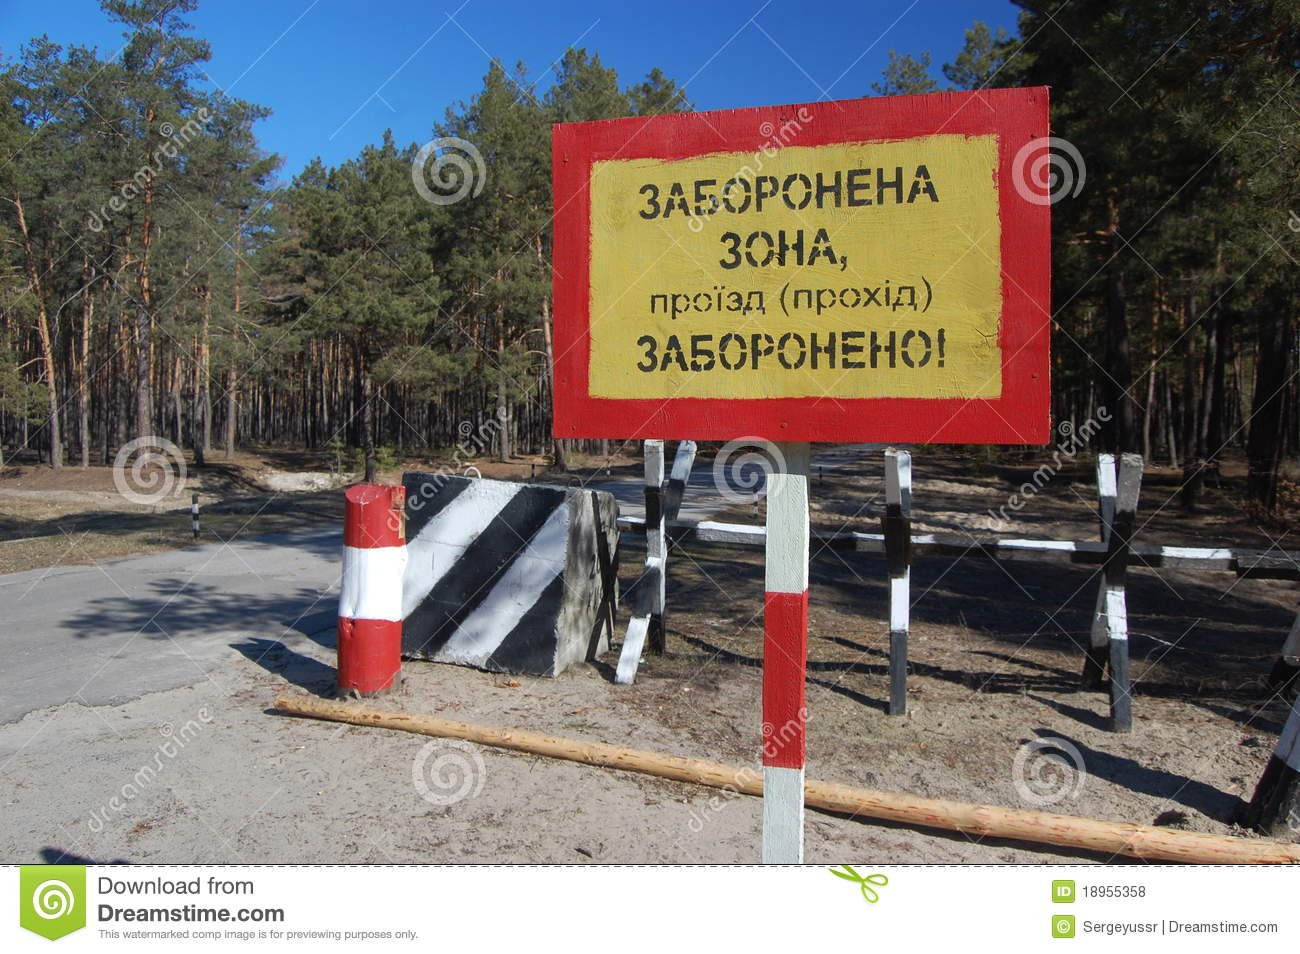 Abandoned military base checkpoint near Chernobyl alienation area